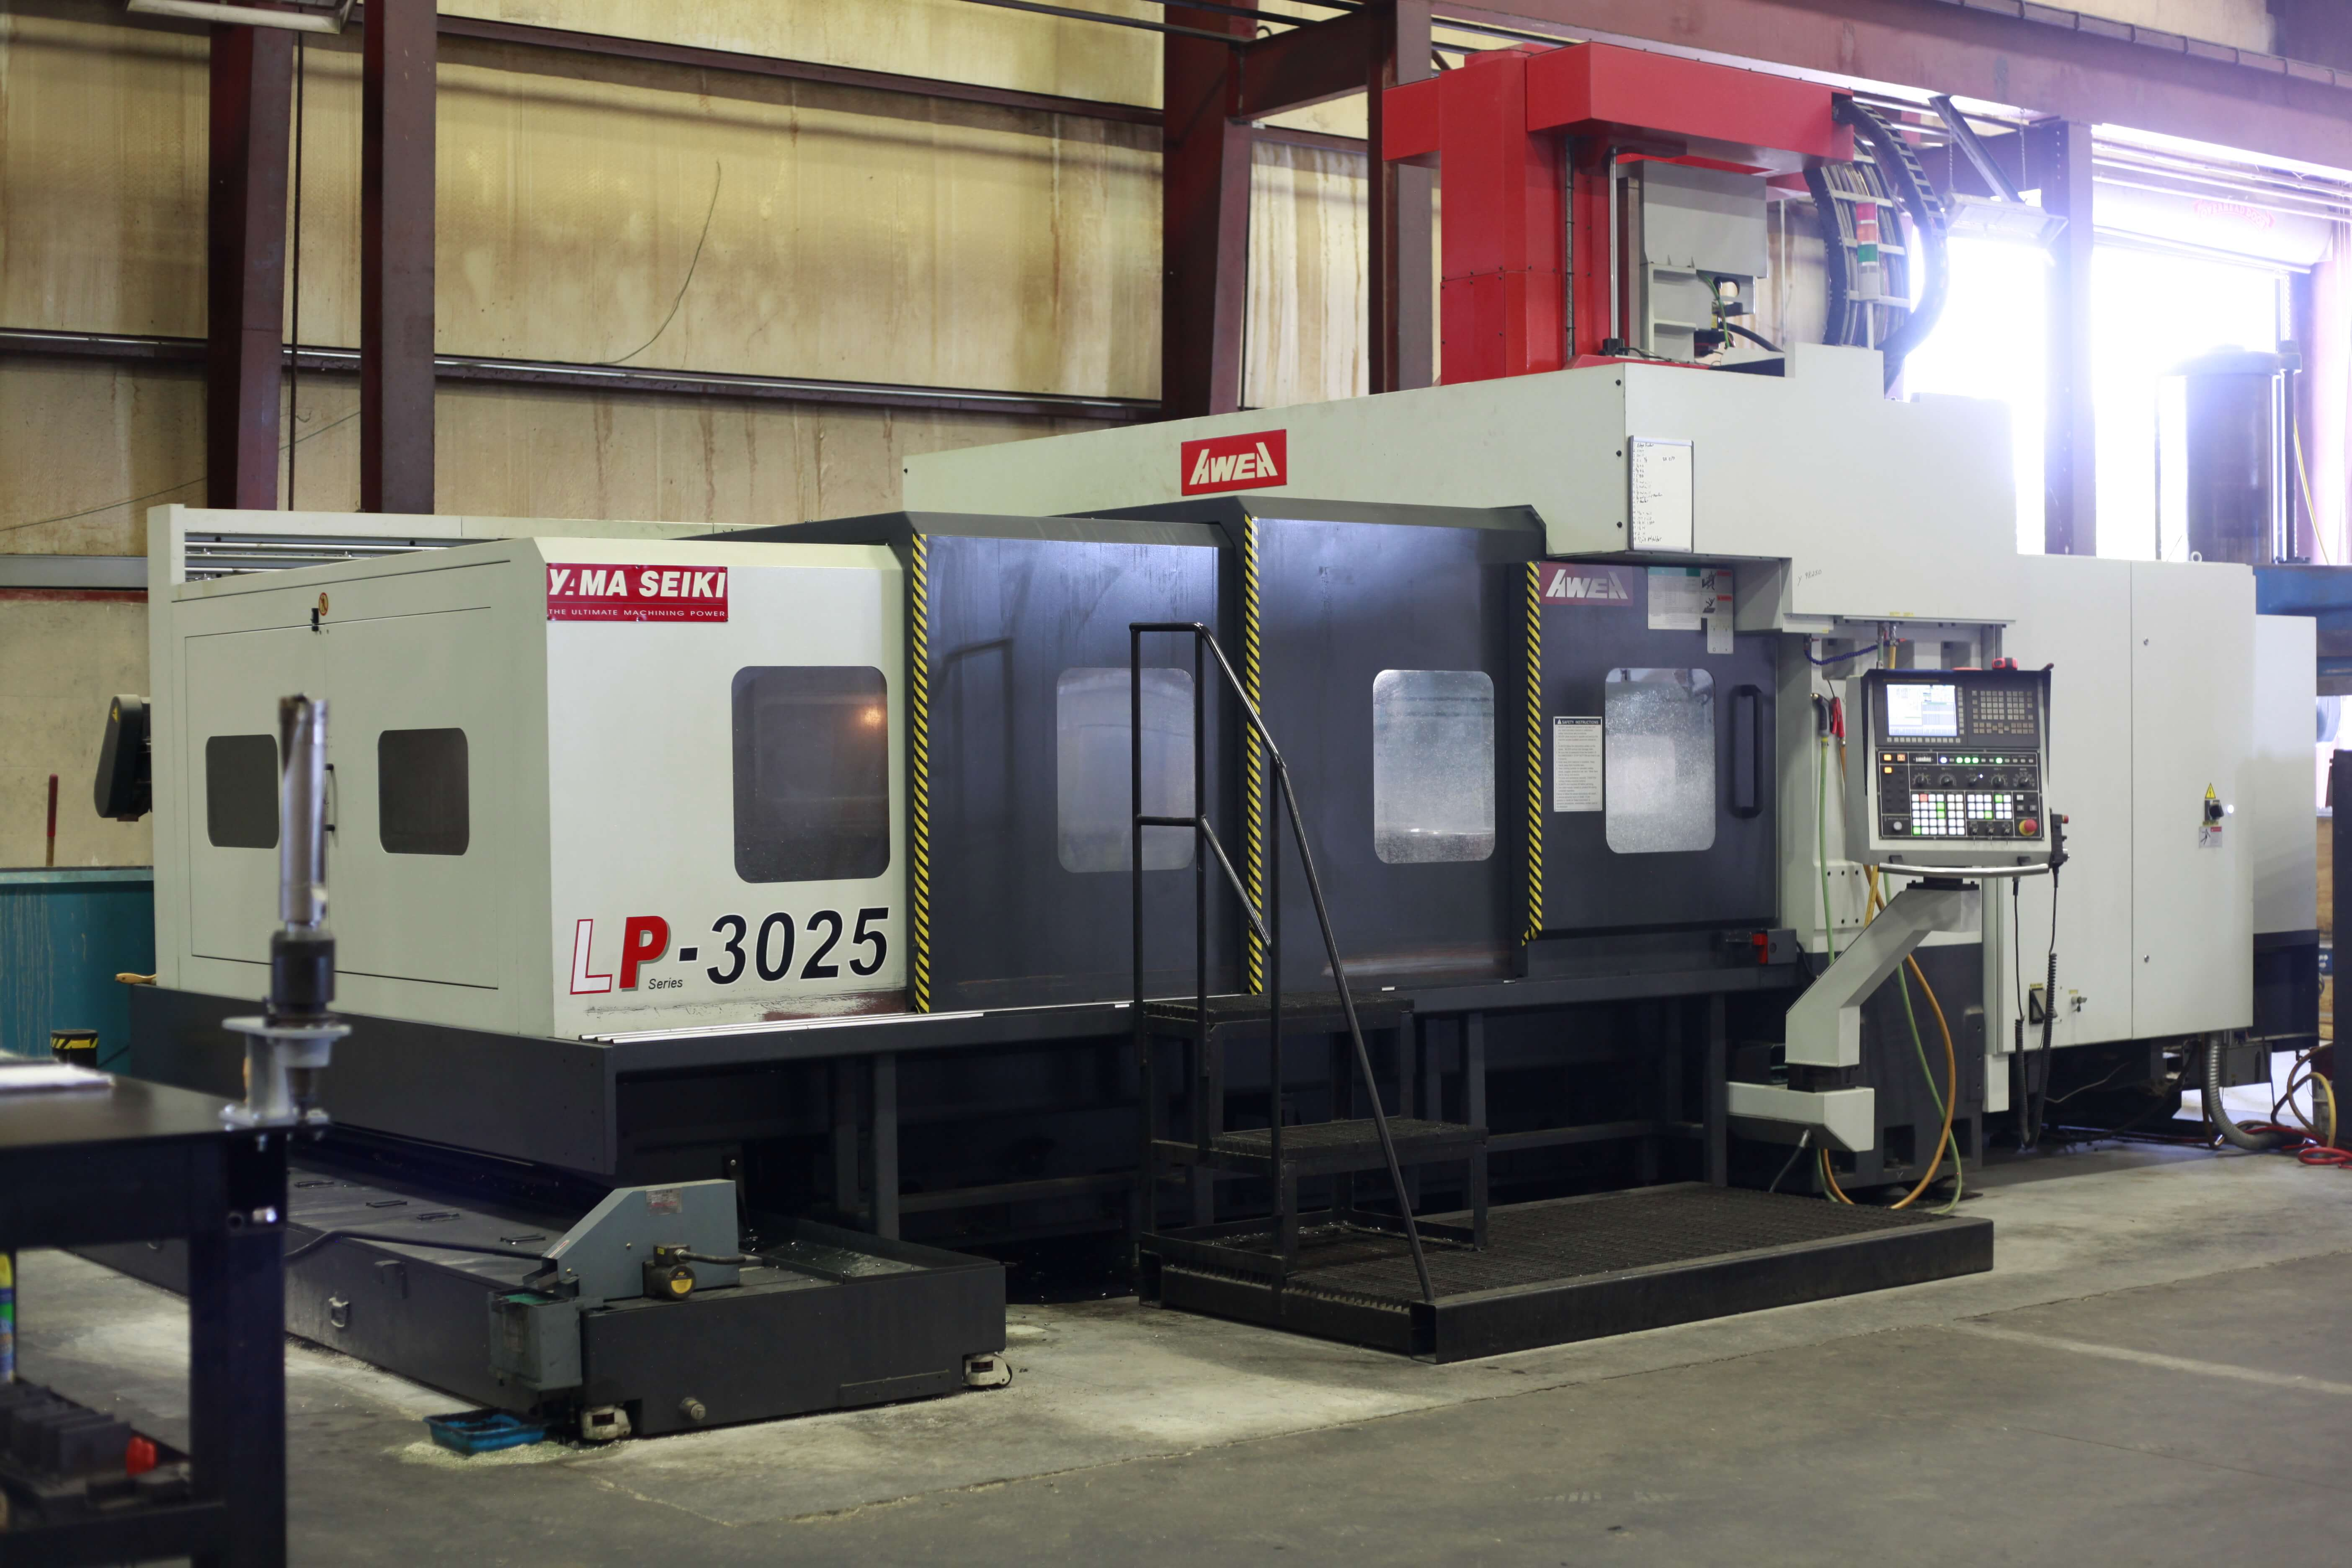 AWEA LP-3025 Vertical Machining Center